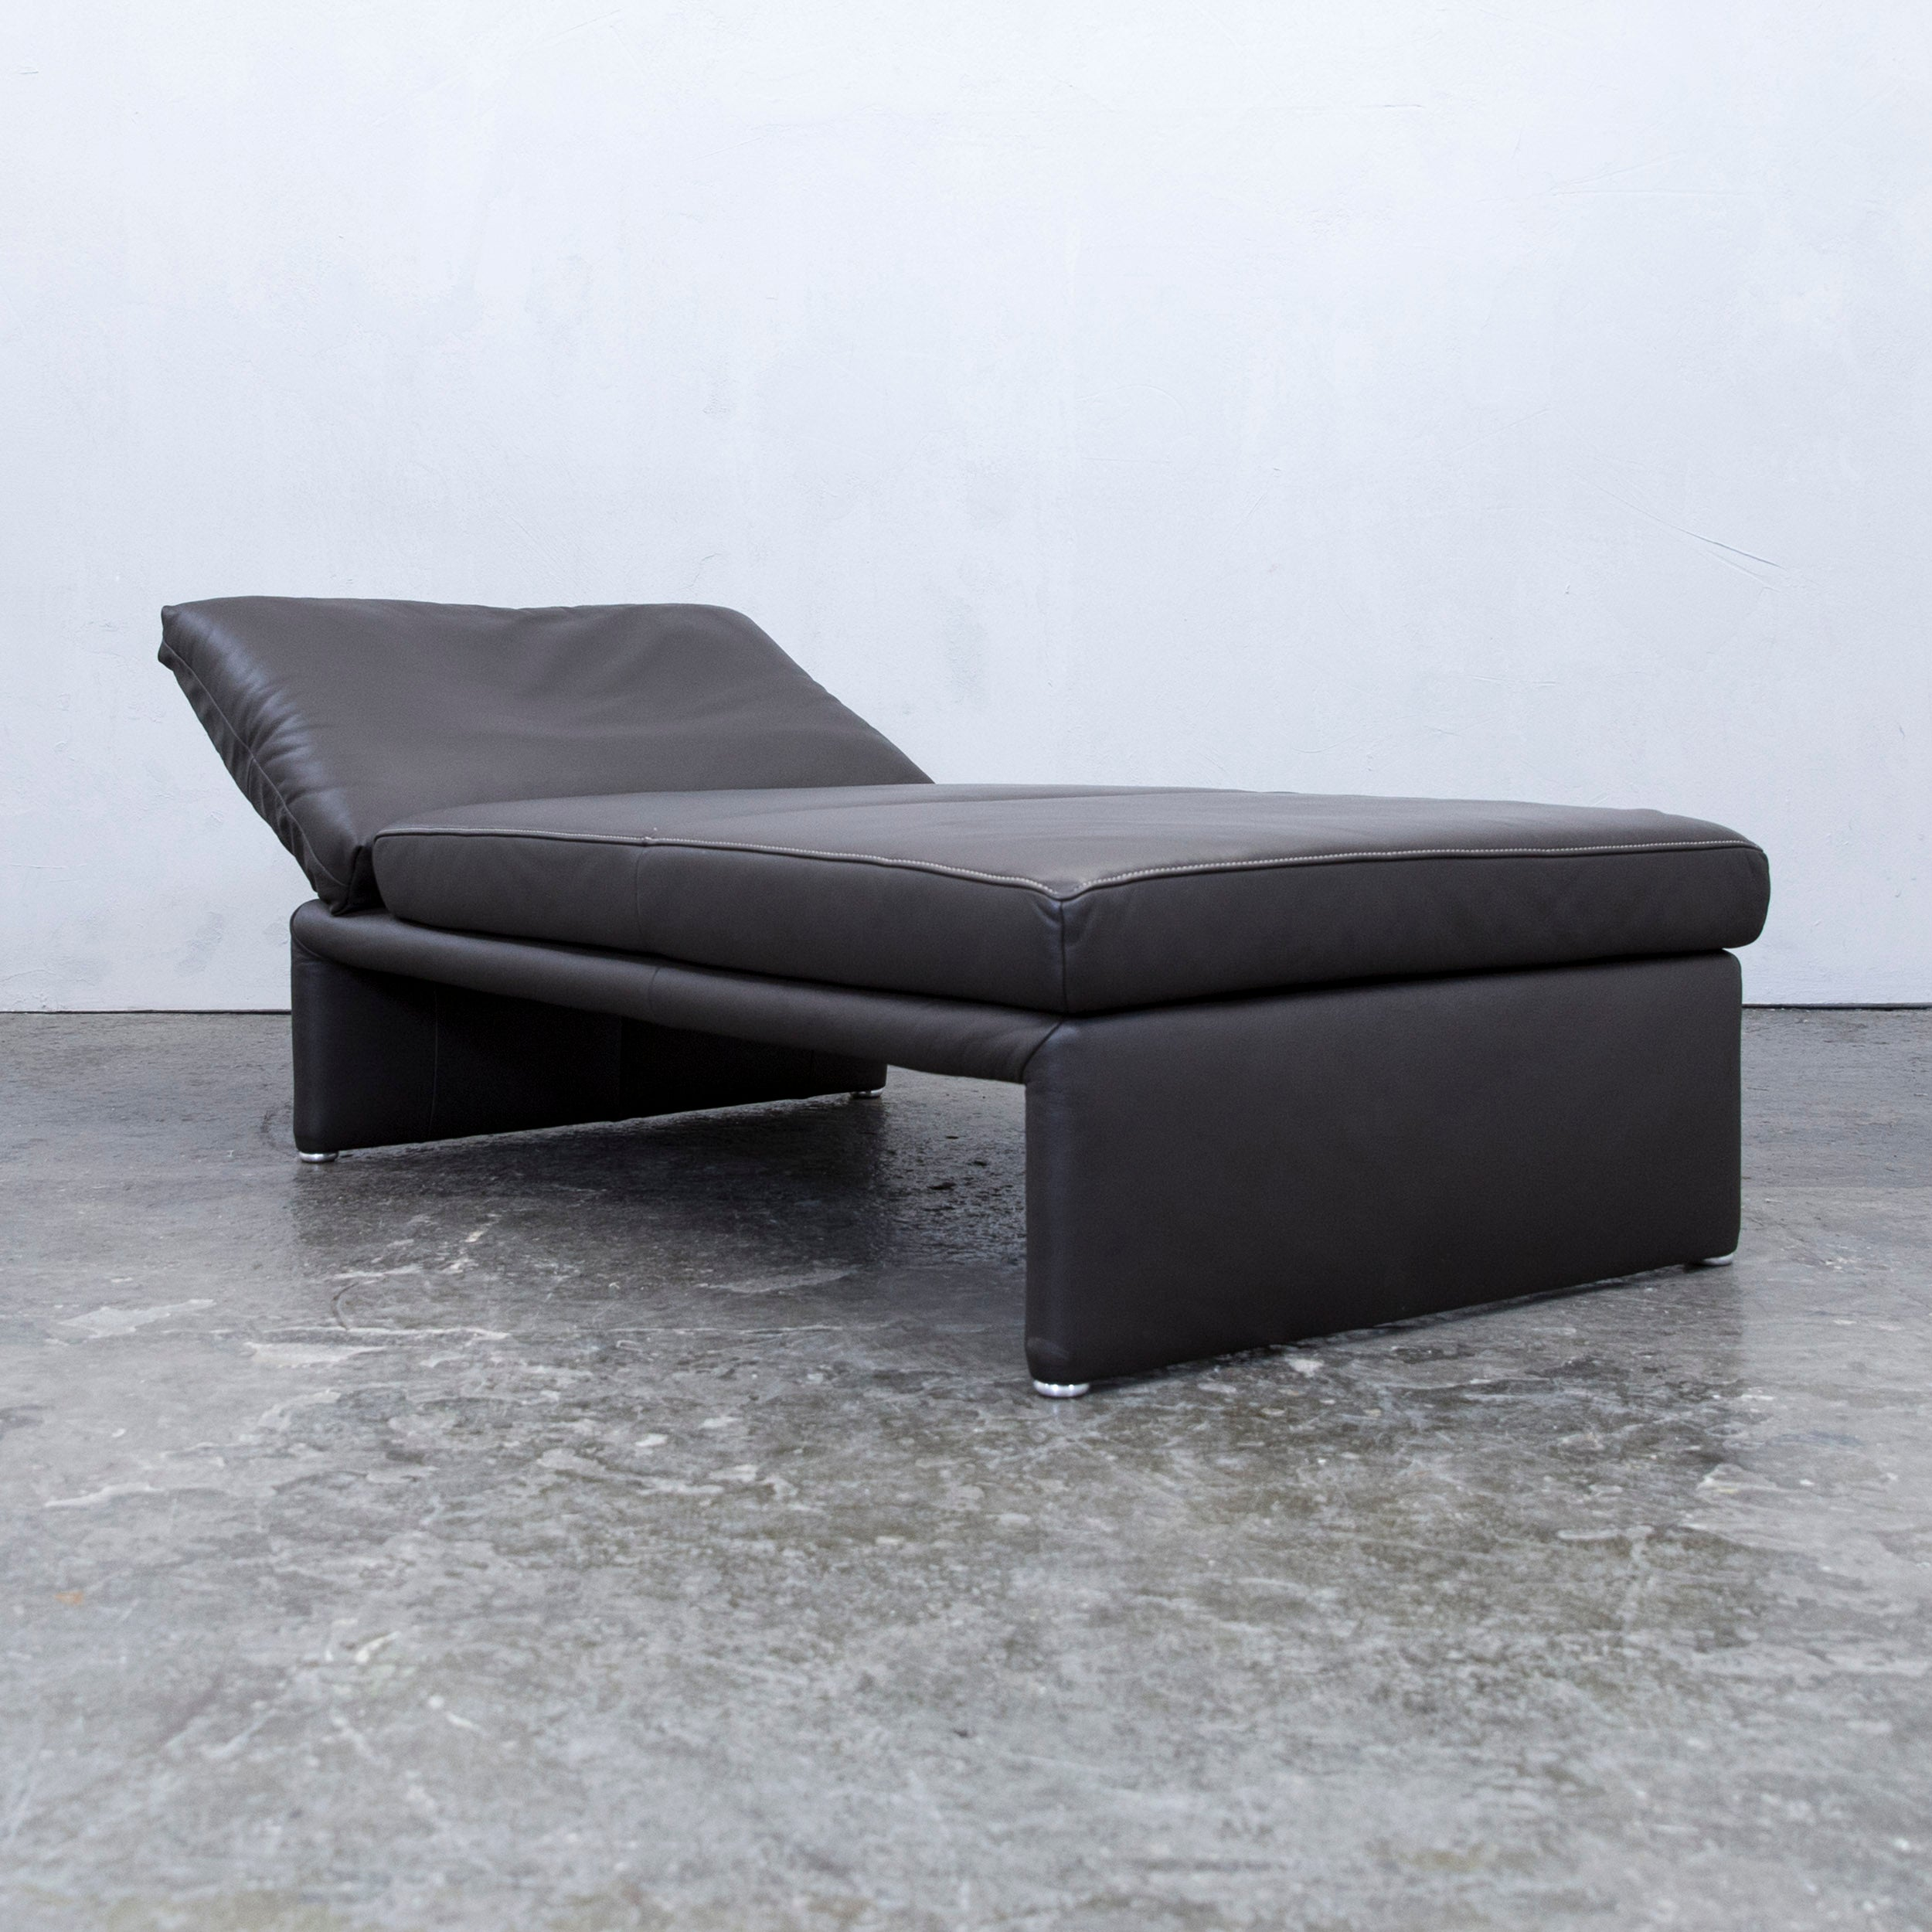 Recamiere Design Koinor Designer Chaiselongue Leather Mocca Brown Recamiere Function Modern